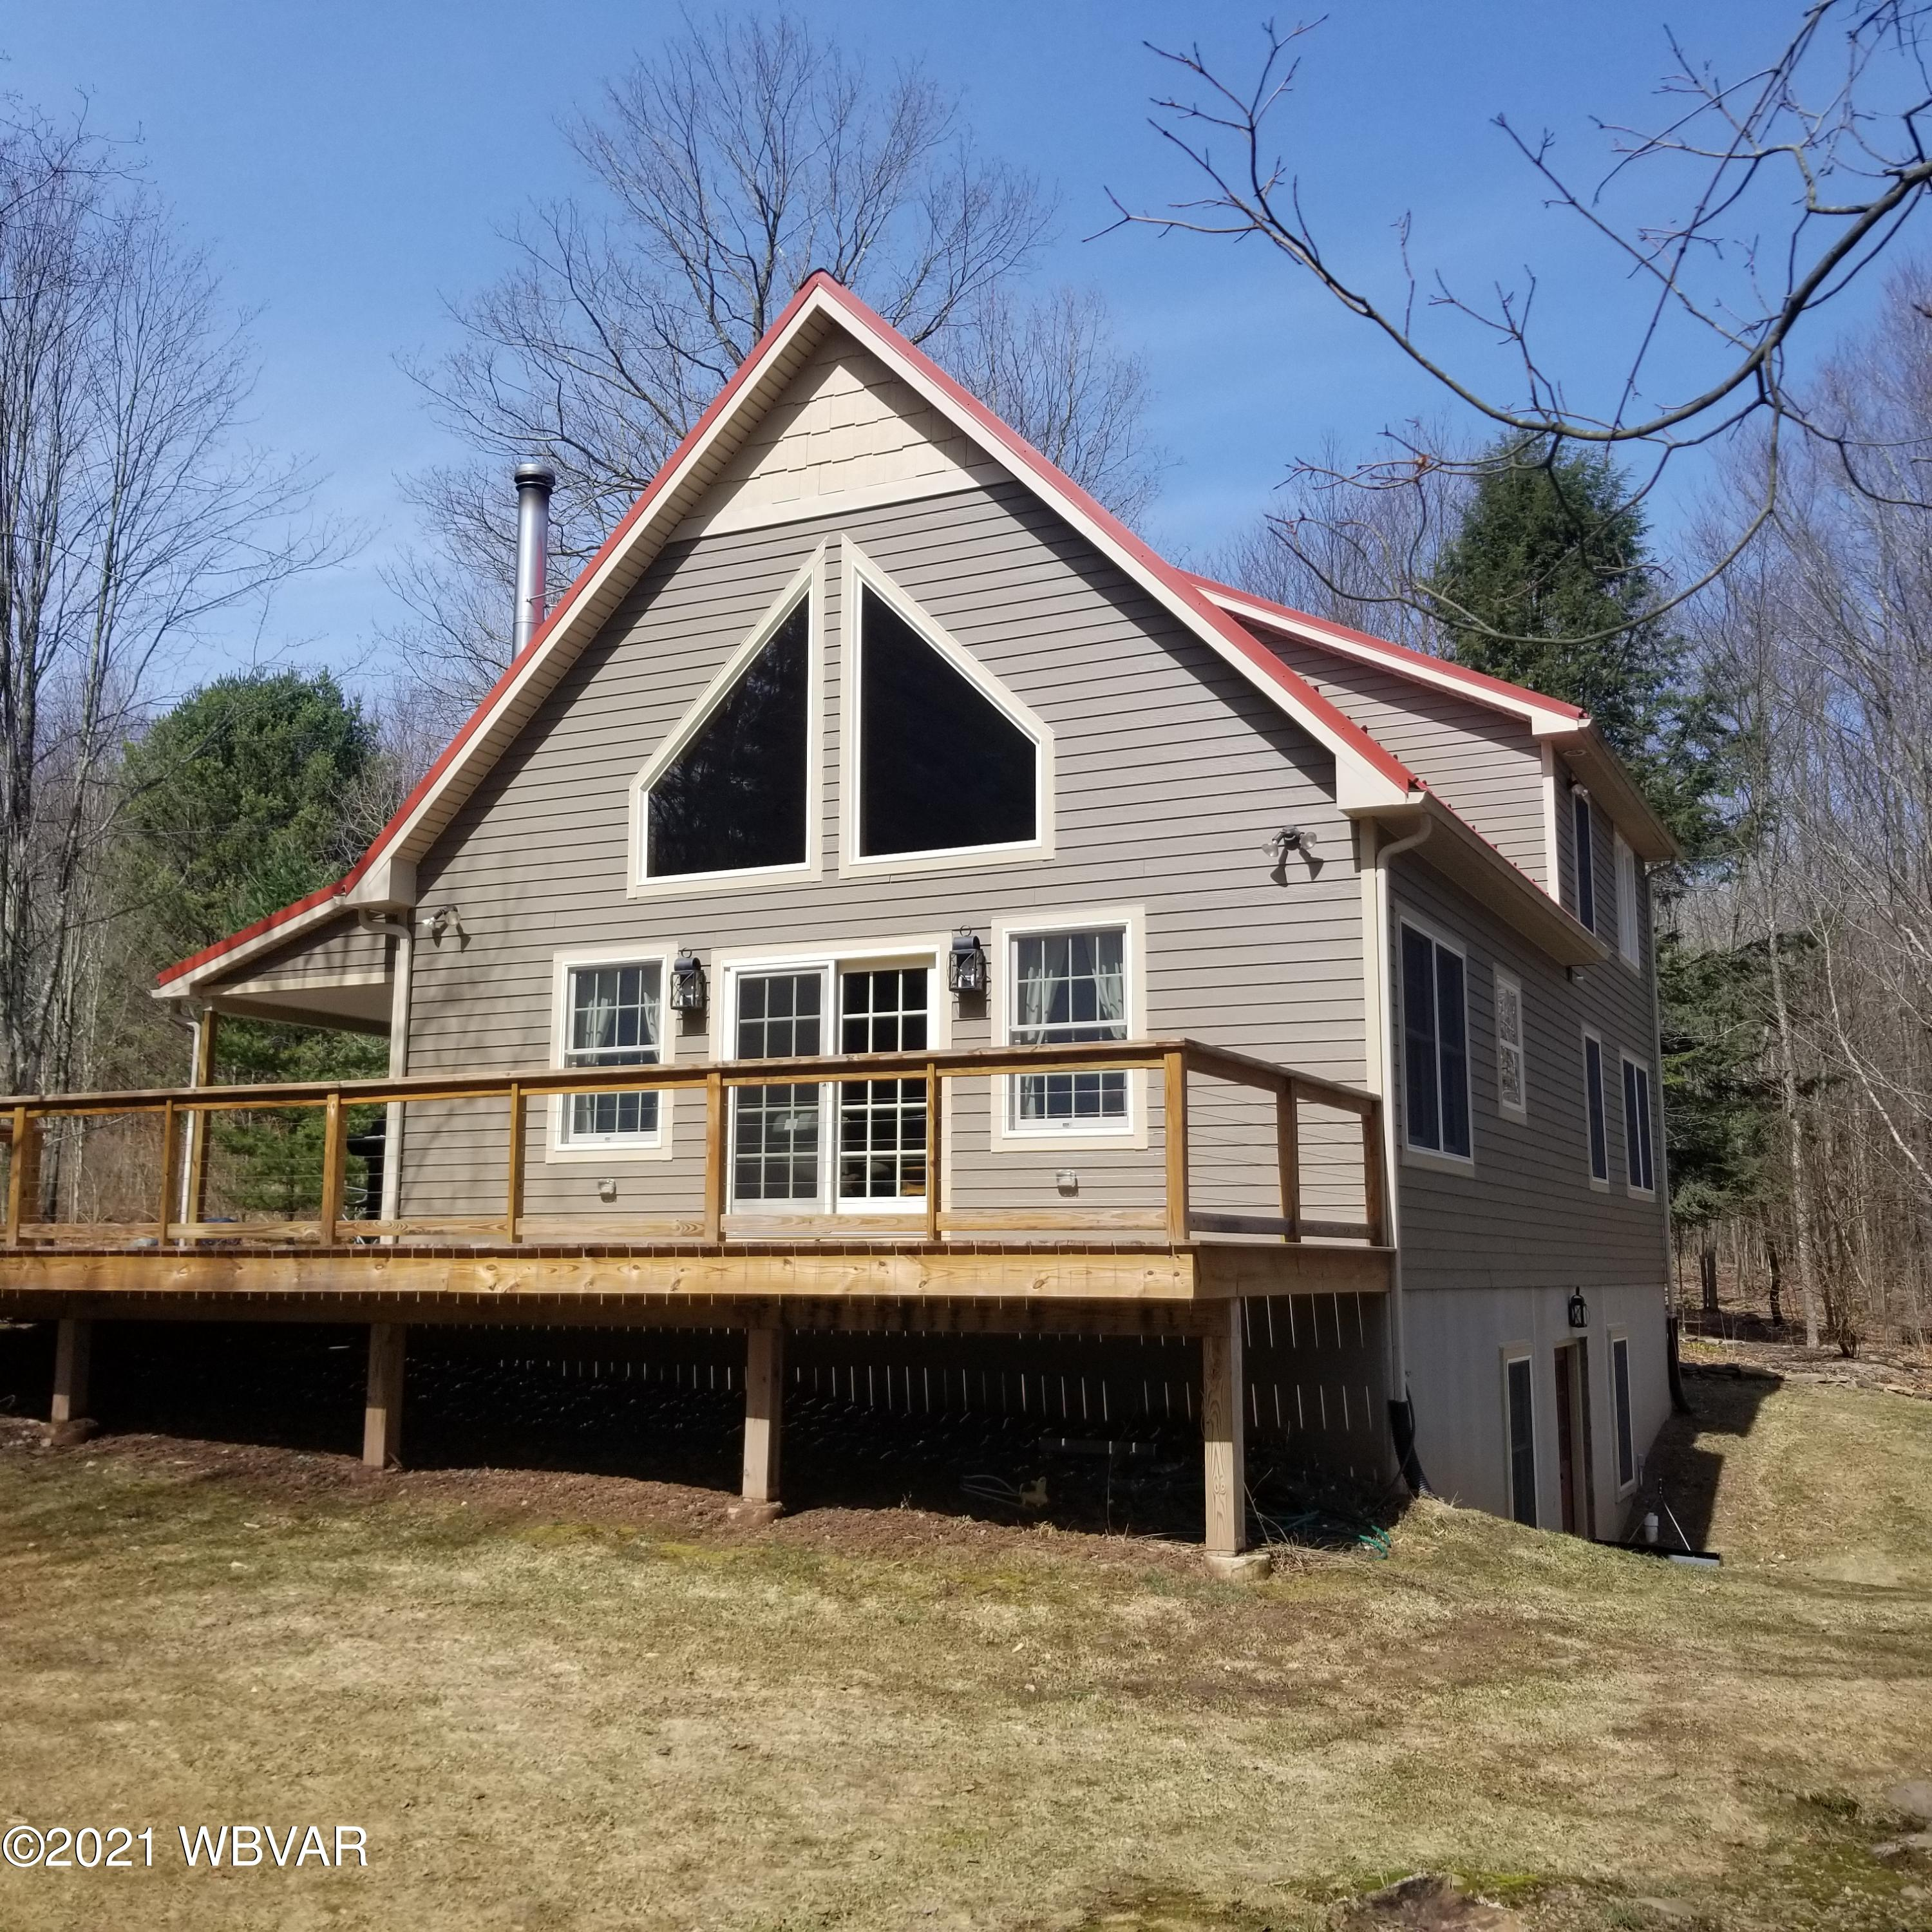 184 CRATER LANE, Forksville, PA 18616, 3 Bedrooms Bedrooms, ,2 BathroomsBathrooms,Residential,For sale,CRATER,WB-92145